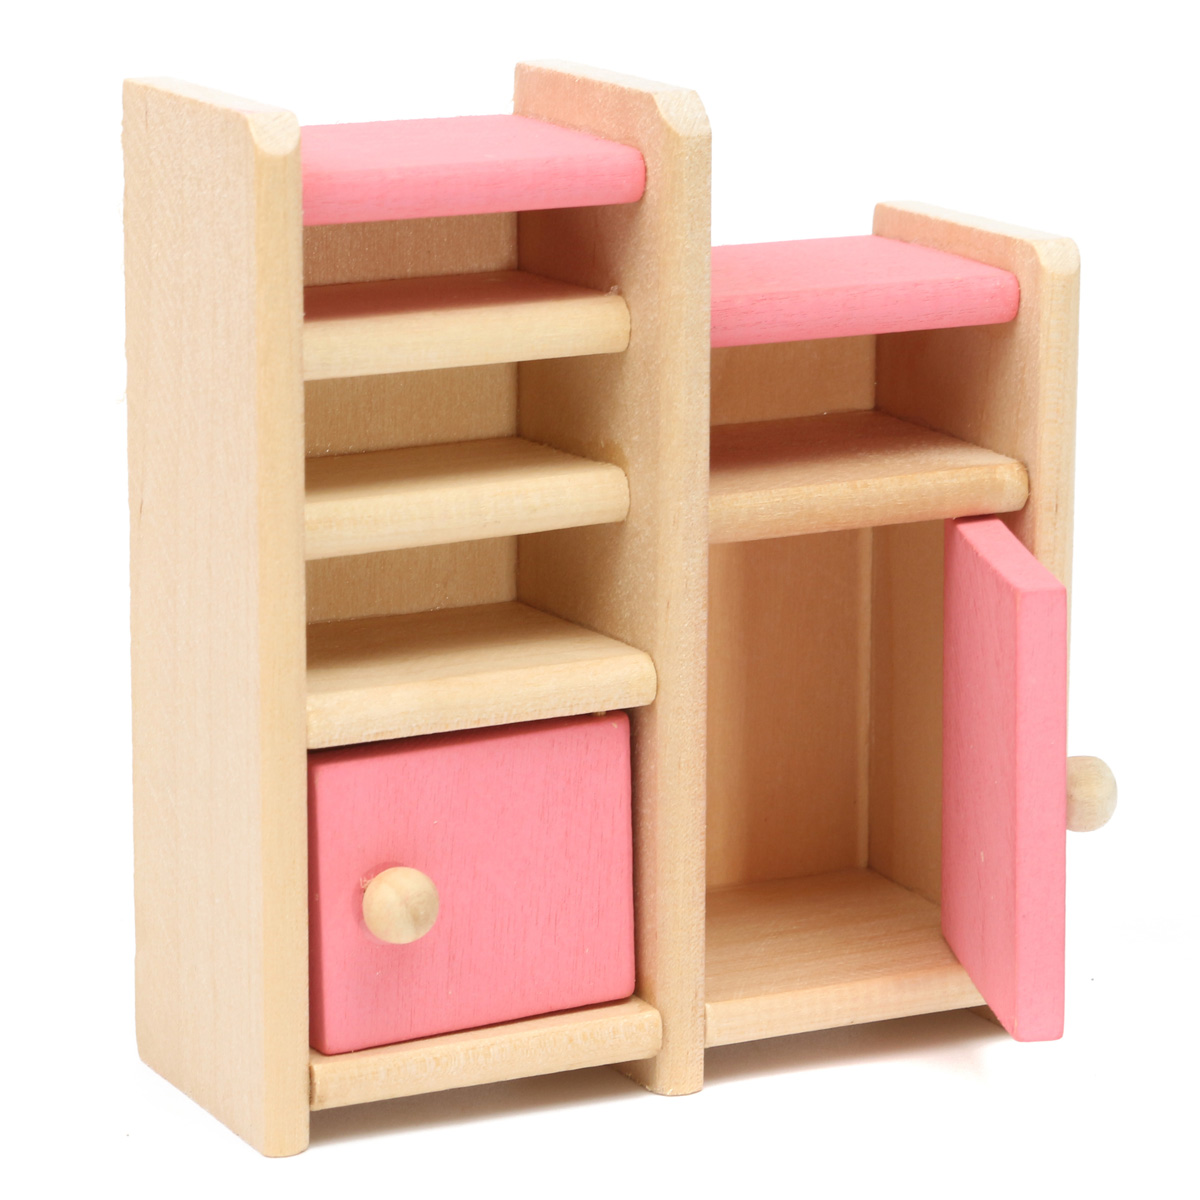 Wooden Doll Set Children Toys Miniature House Family Furniture Kit Accessories At Banggood